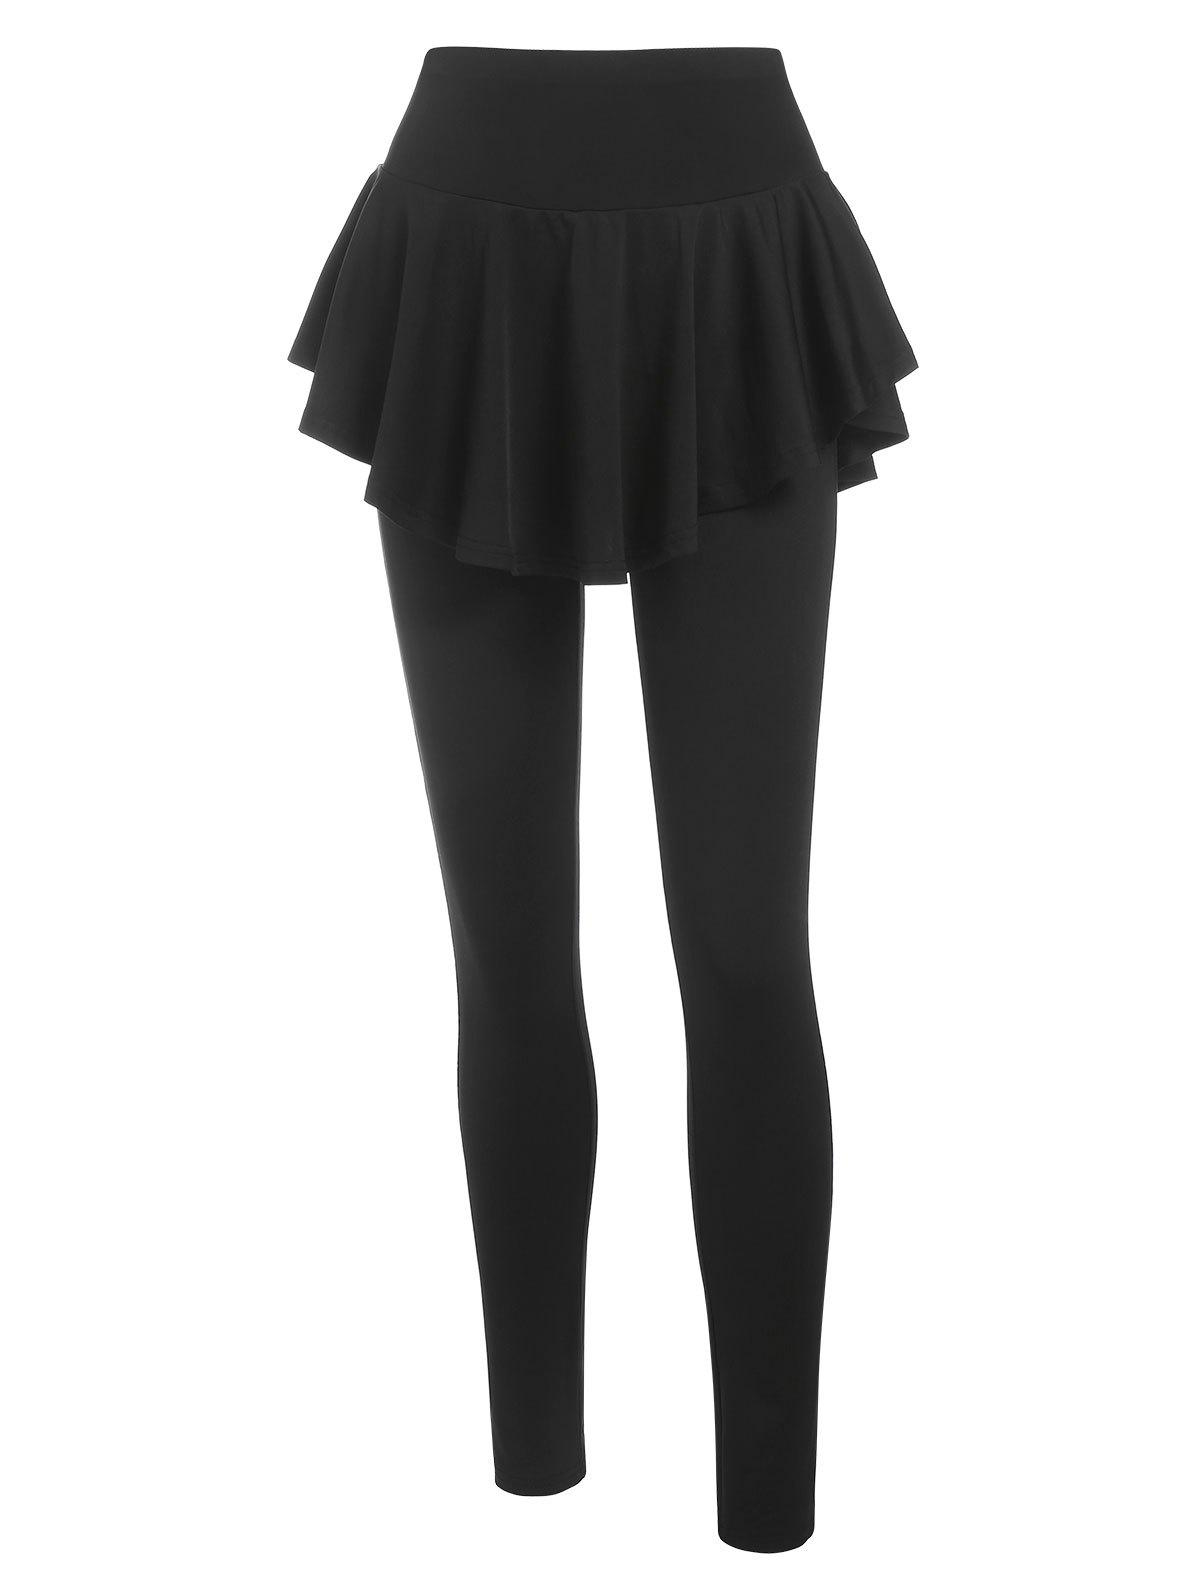 Unique Skinny High Waisted Skirted Pants